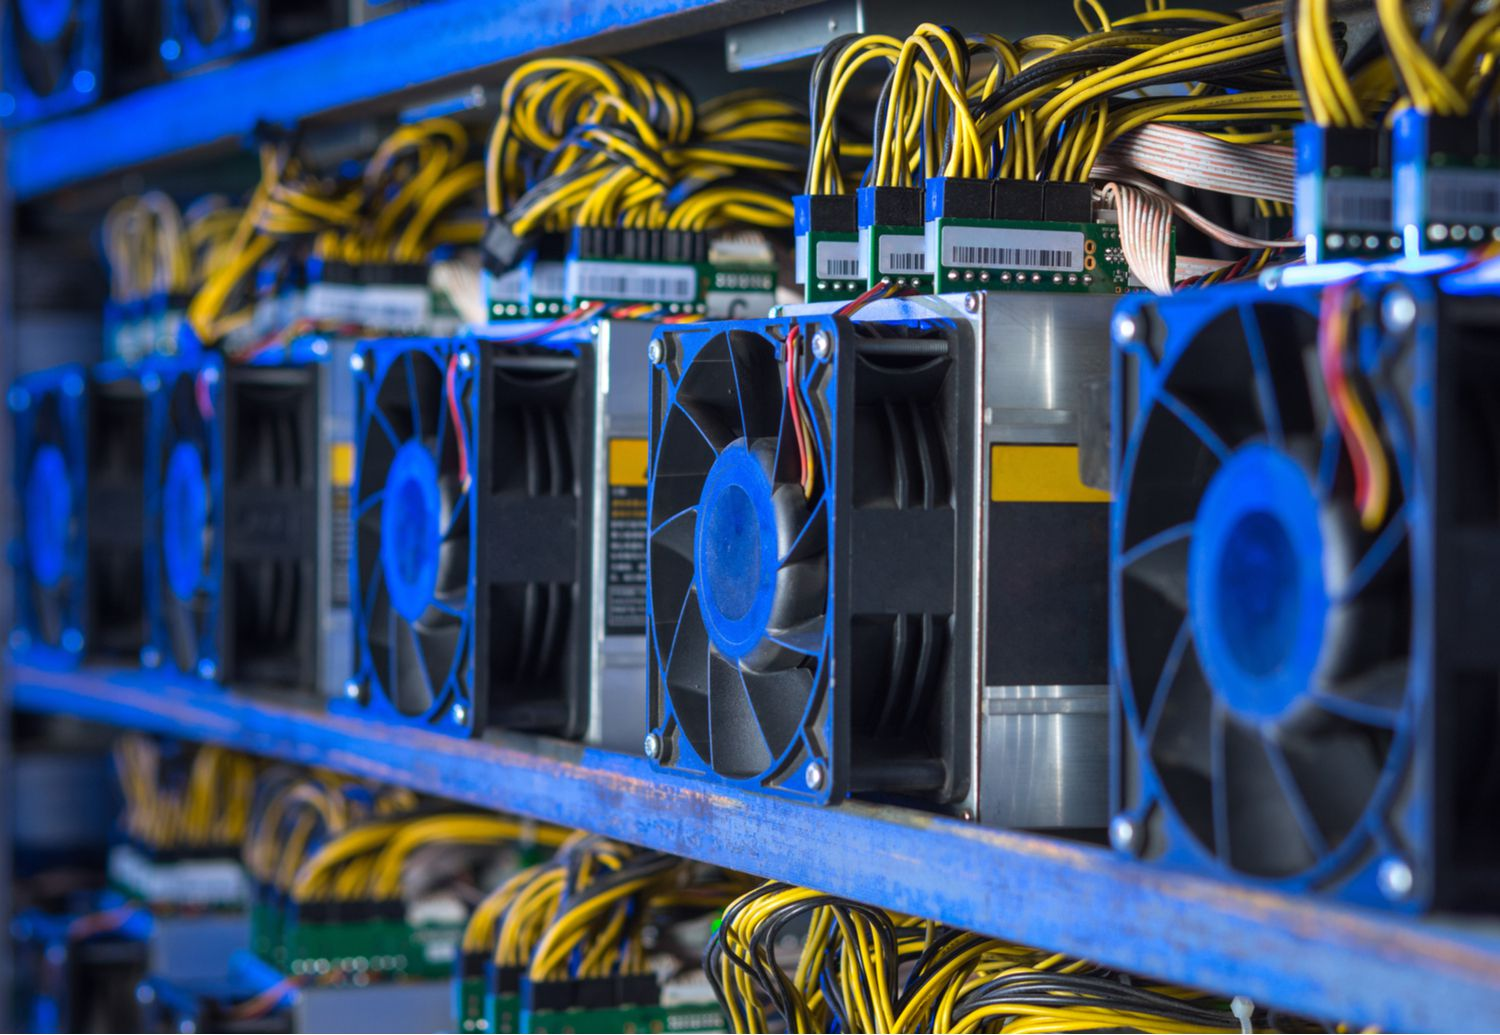 Powerbridge to Deploy 2,600 Crypto Mining Rigs in Hong Kongon October 8, 2021 at 3:20 pm